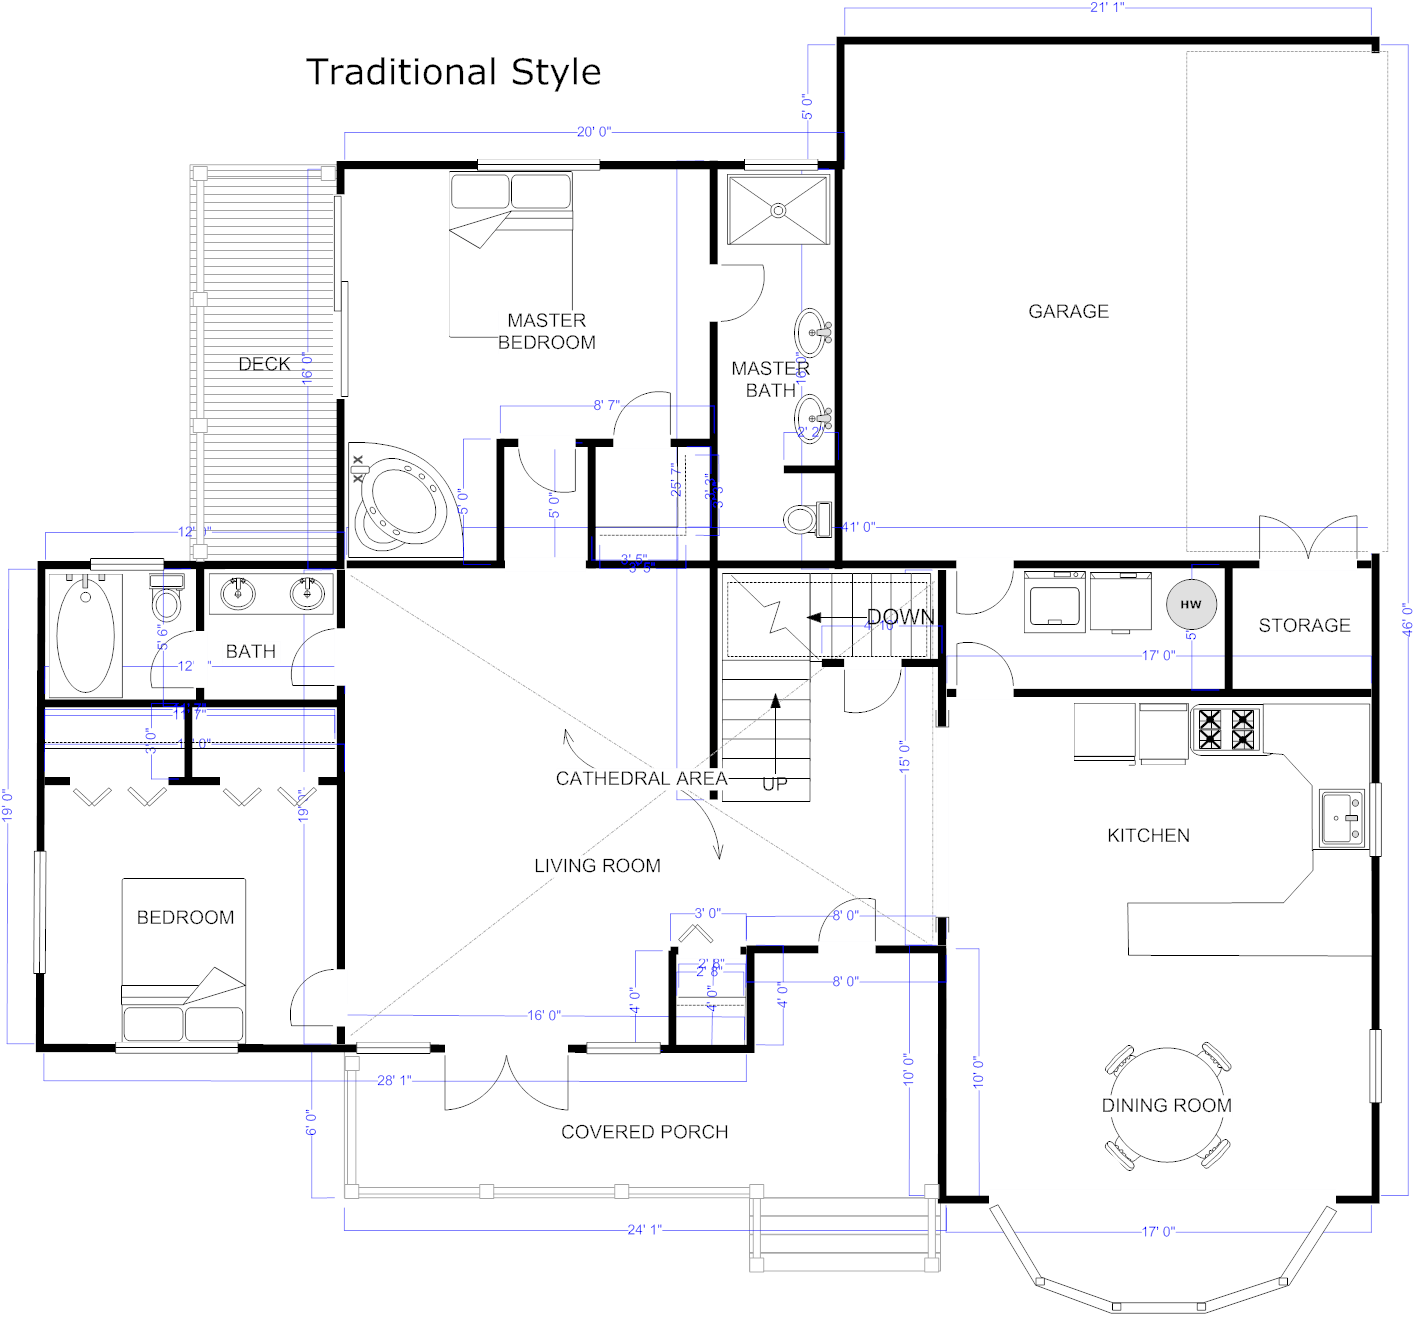 Free sample floor plans for houses gurus floor for Sample building plans